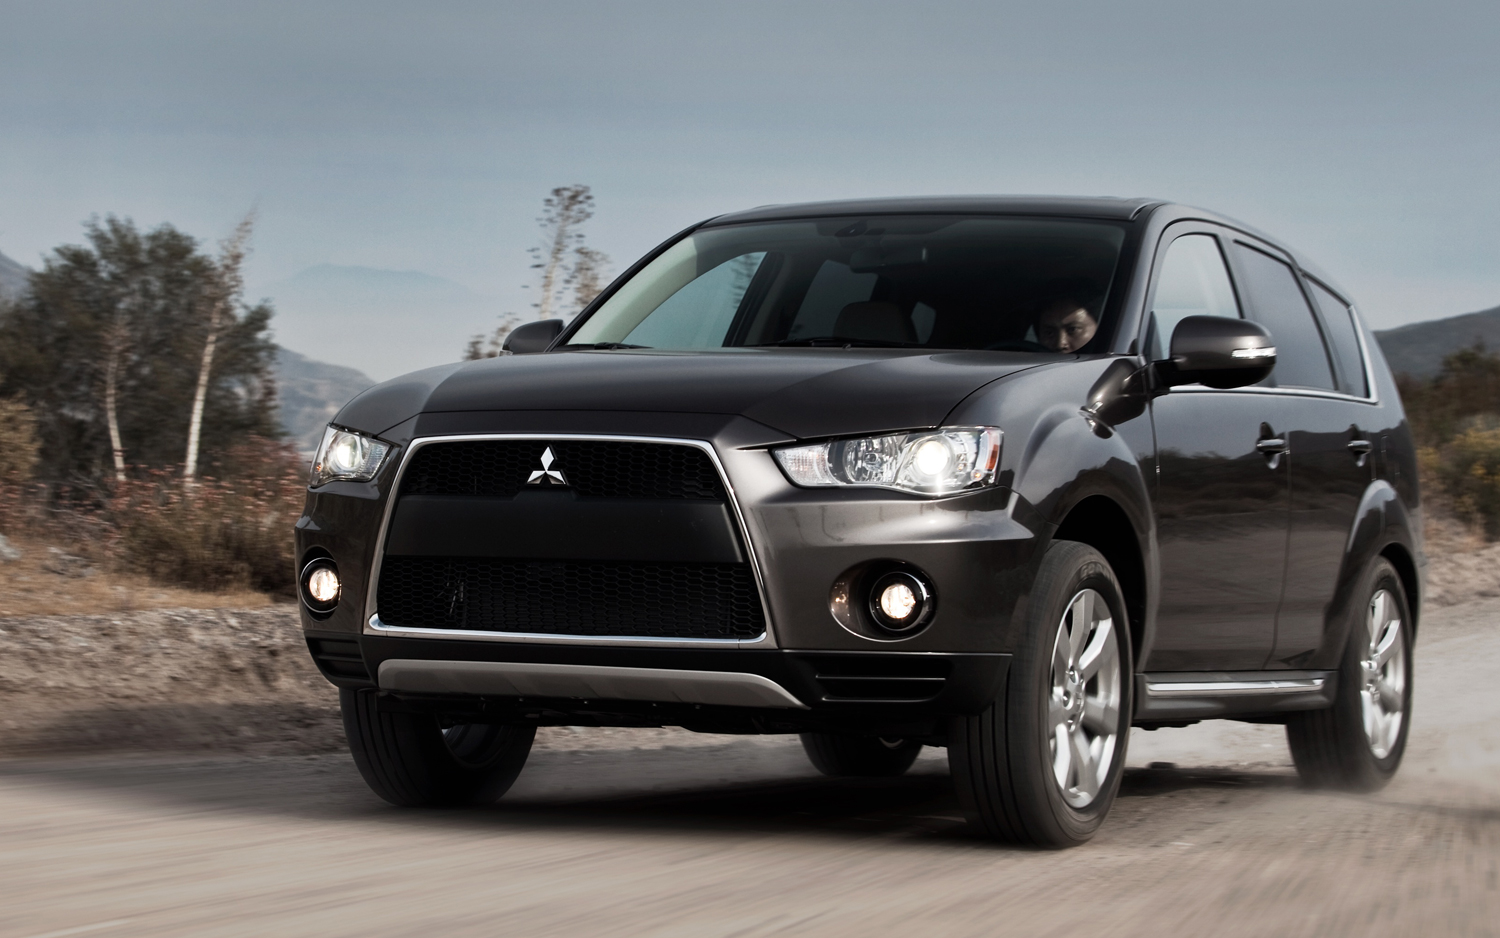 Mitsubishi outlander photo - 4